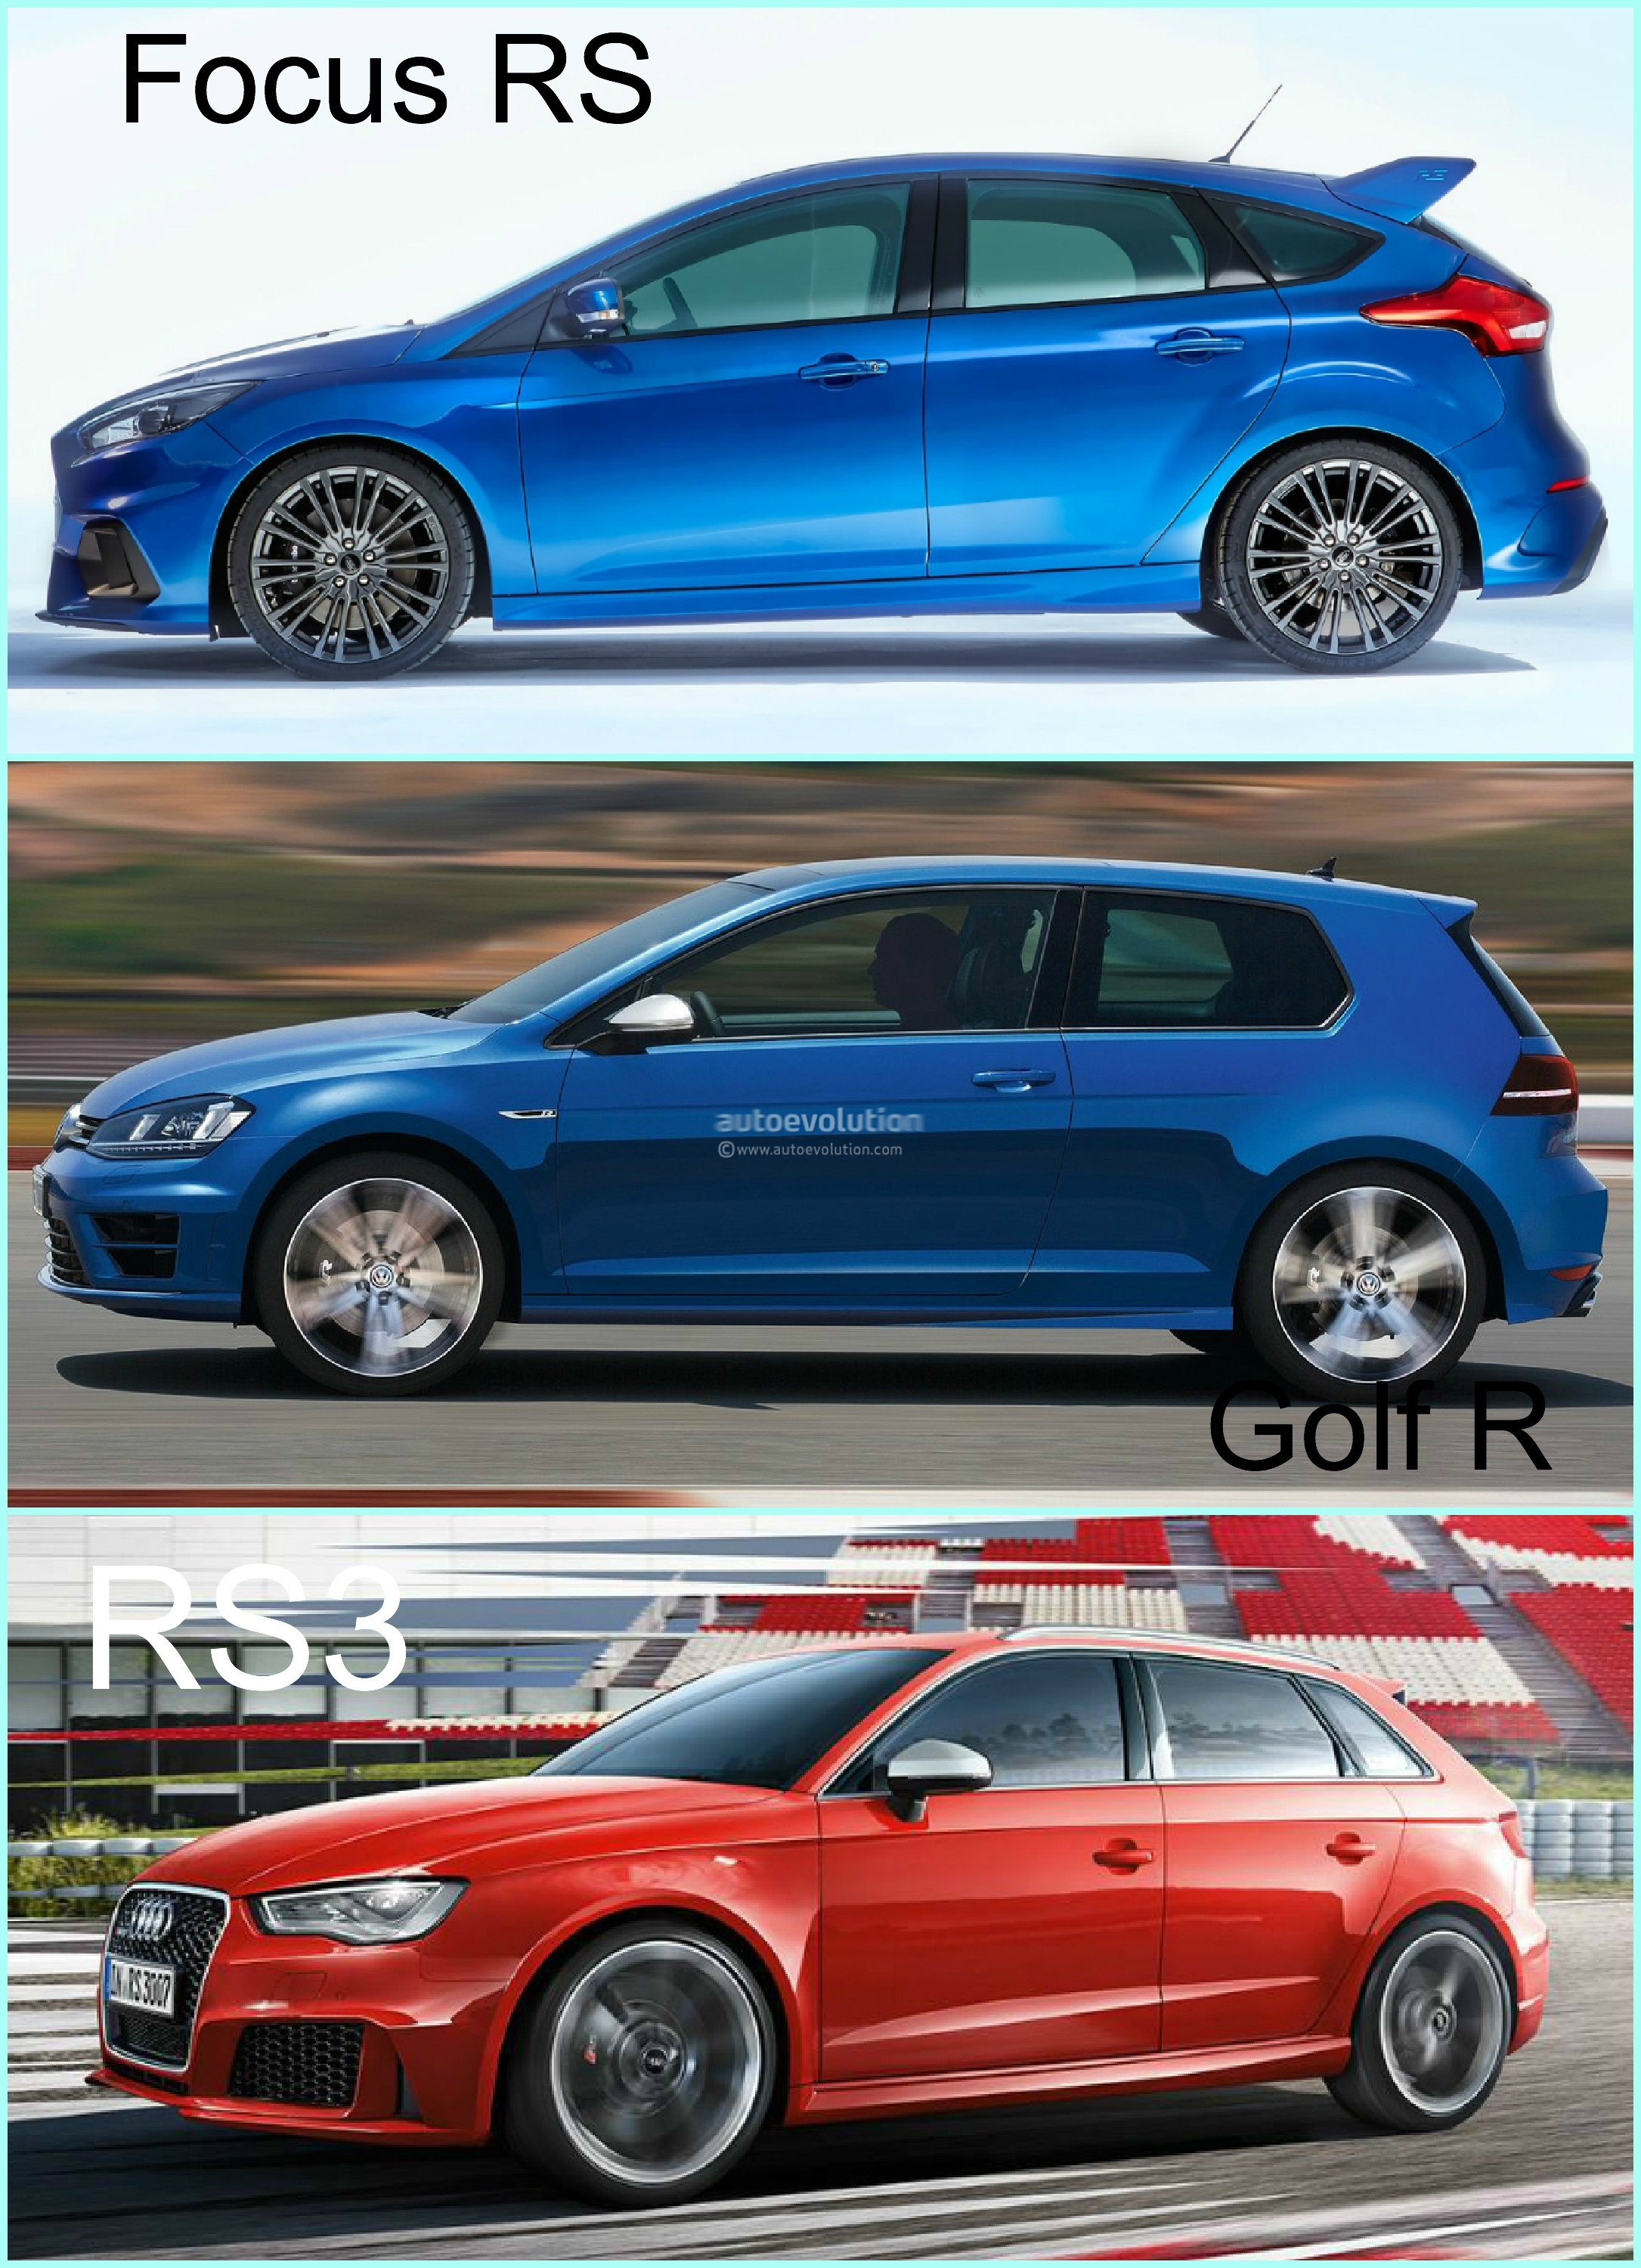 Ford Focus Awd >> 2016 Ford Focus RS vs Golf R and Audi RS3 - Hyper Hatch Photo Comparison - autoevolution